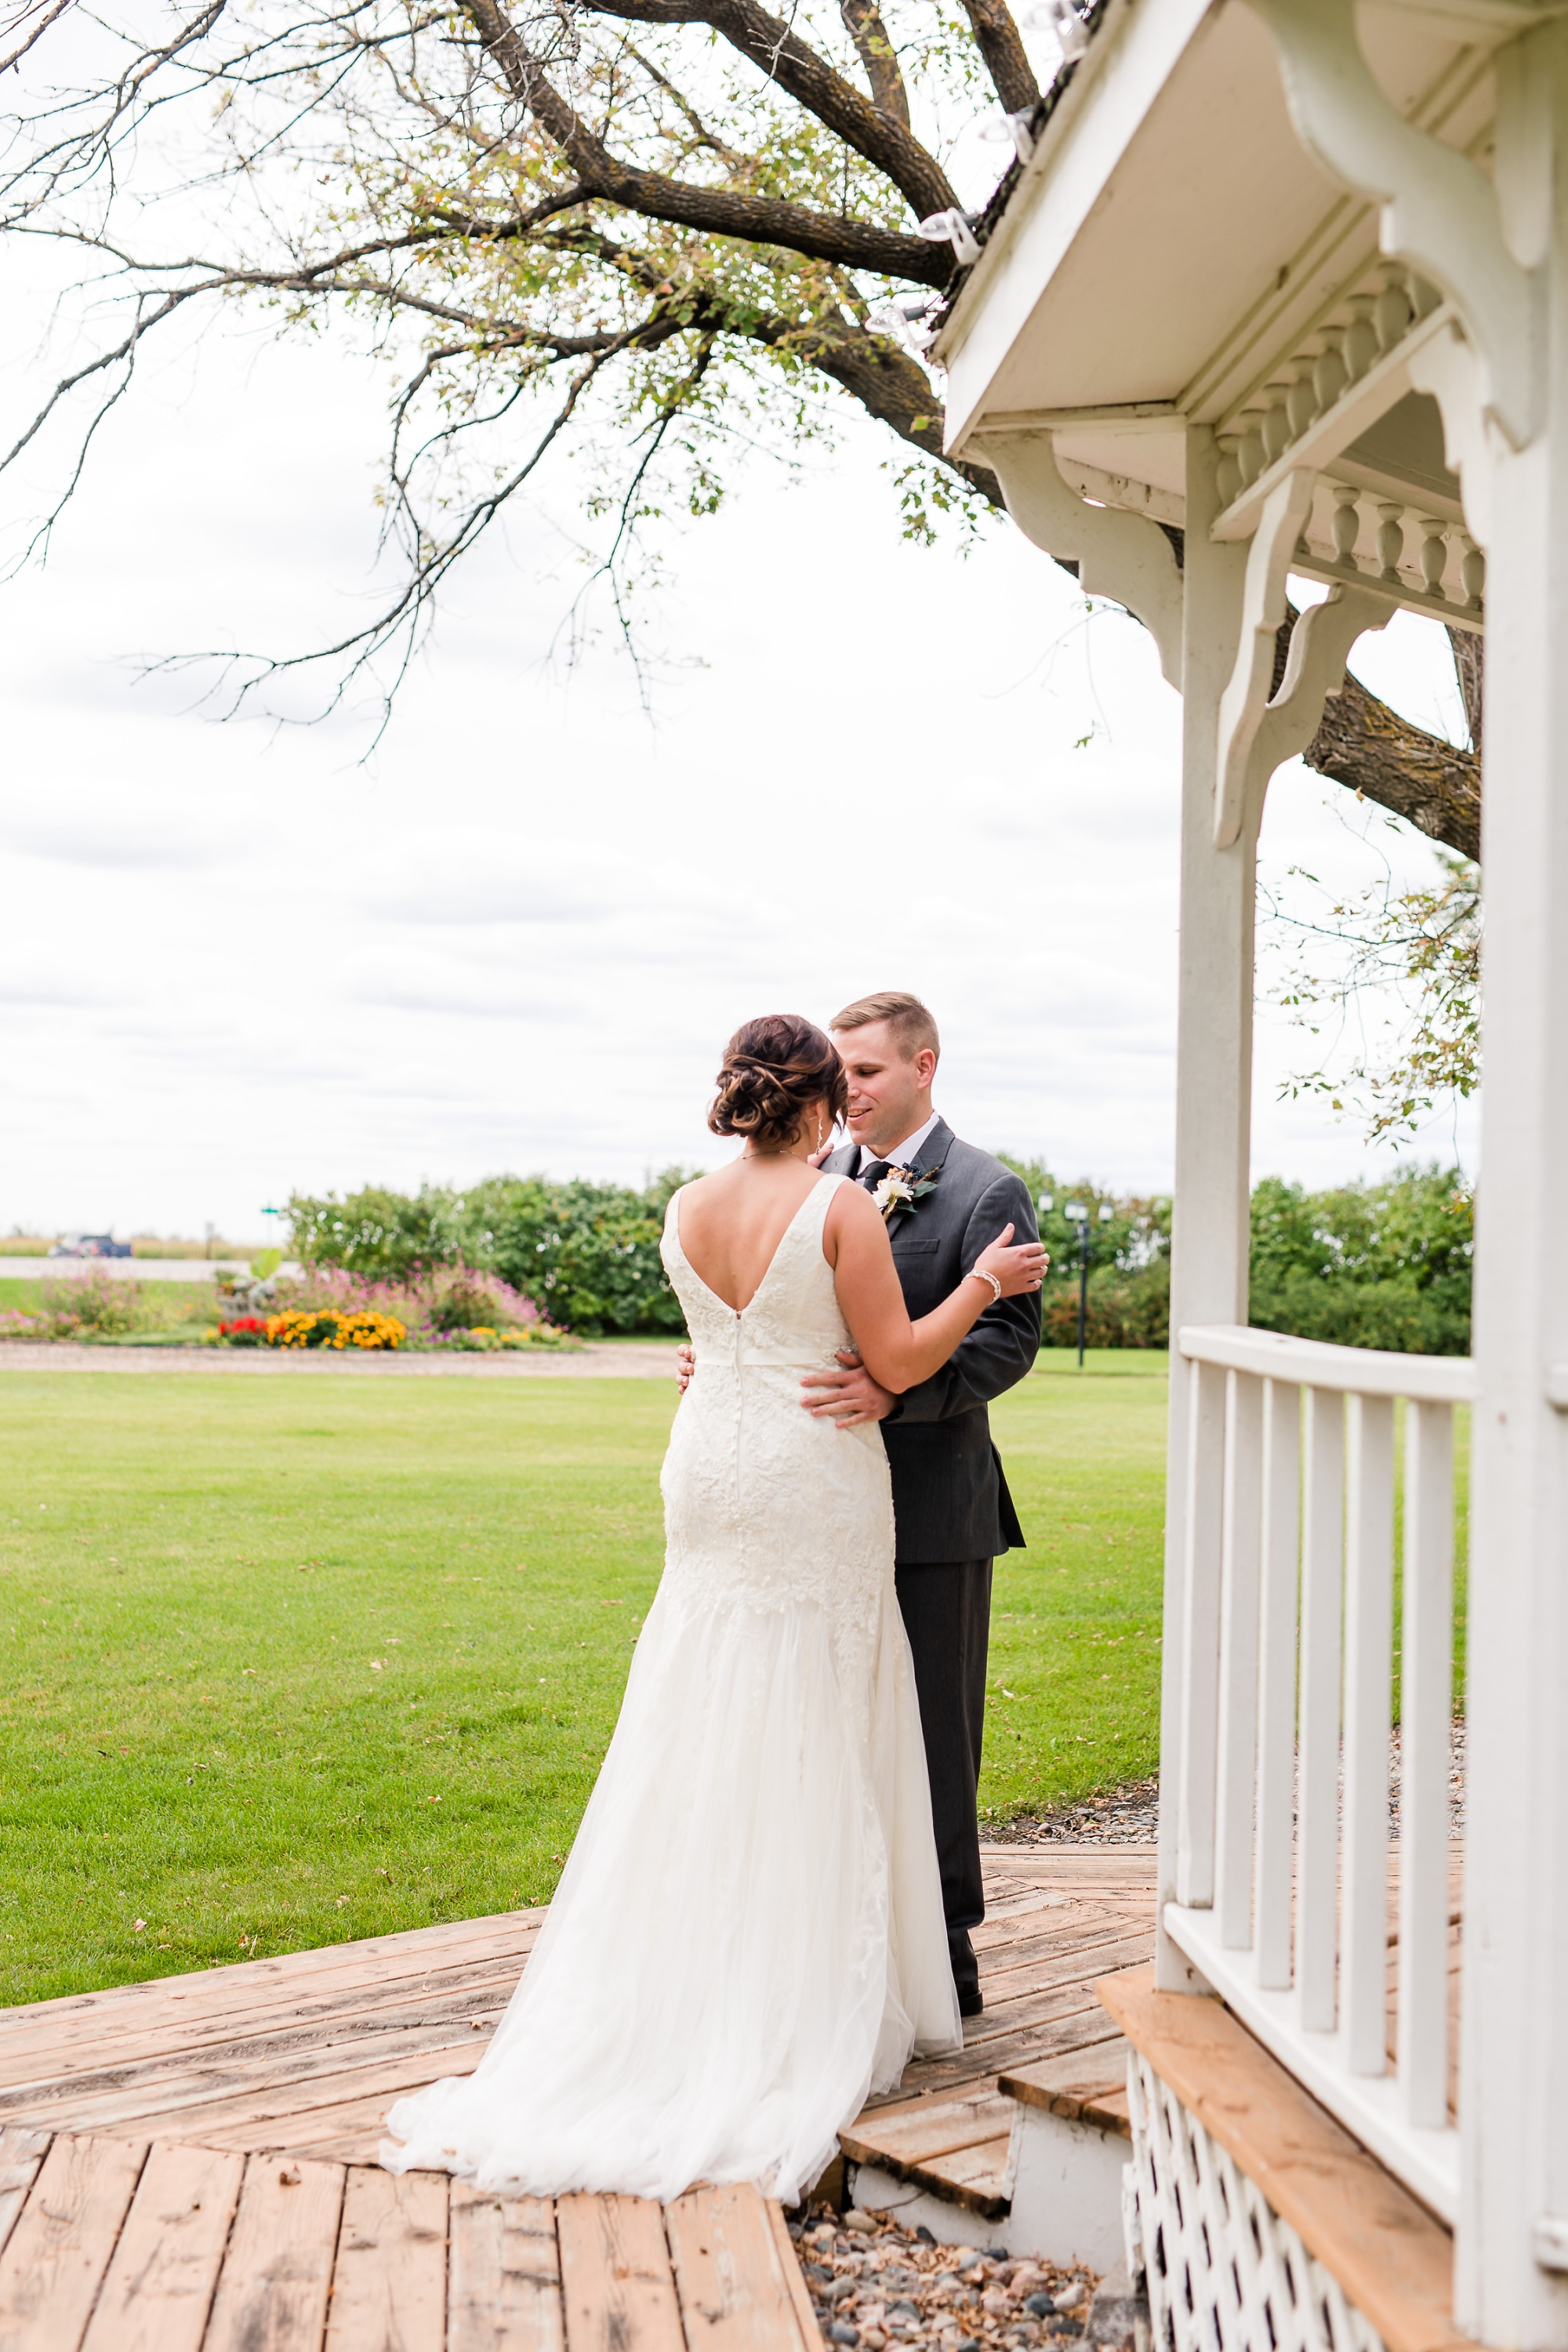 Amber Langerud Photography_Moohread, Outdoor, Barn Wedding at A Friends House_7046.jpg